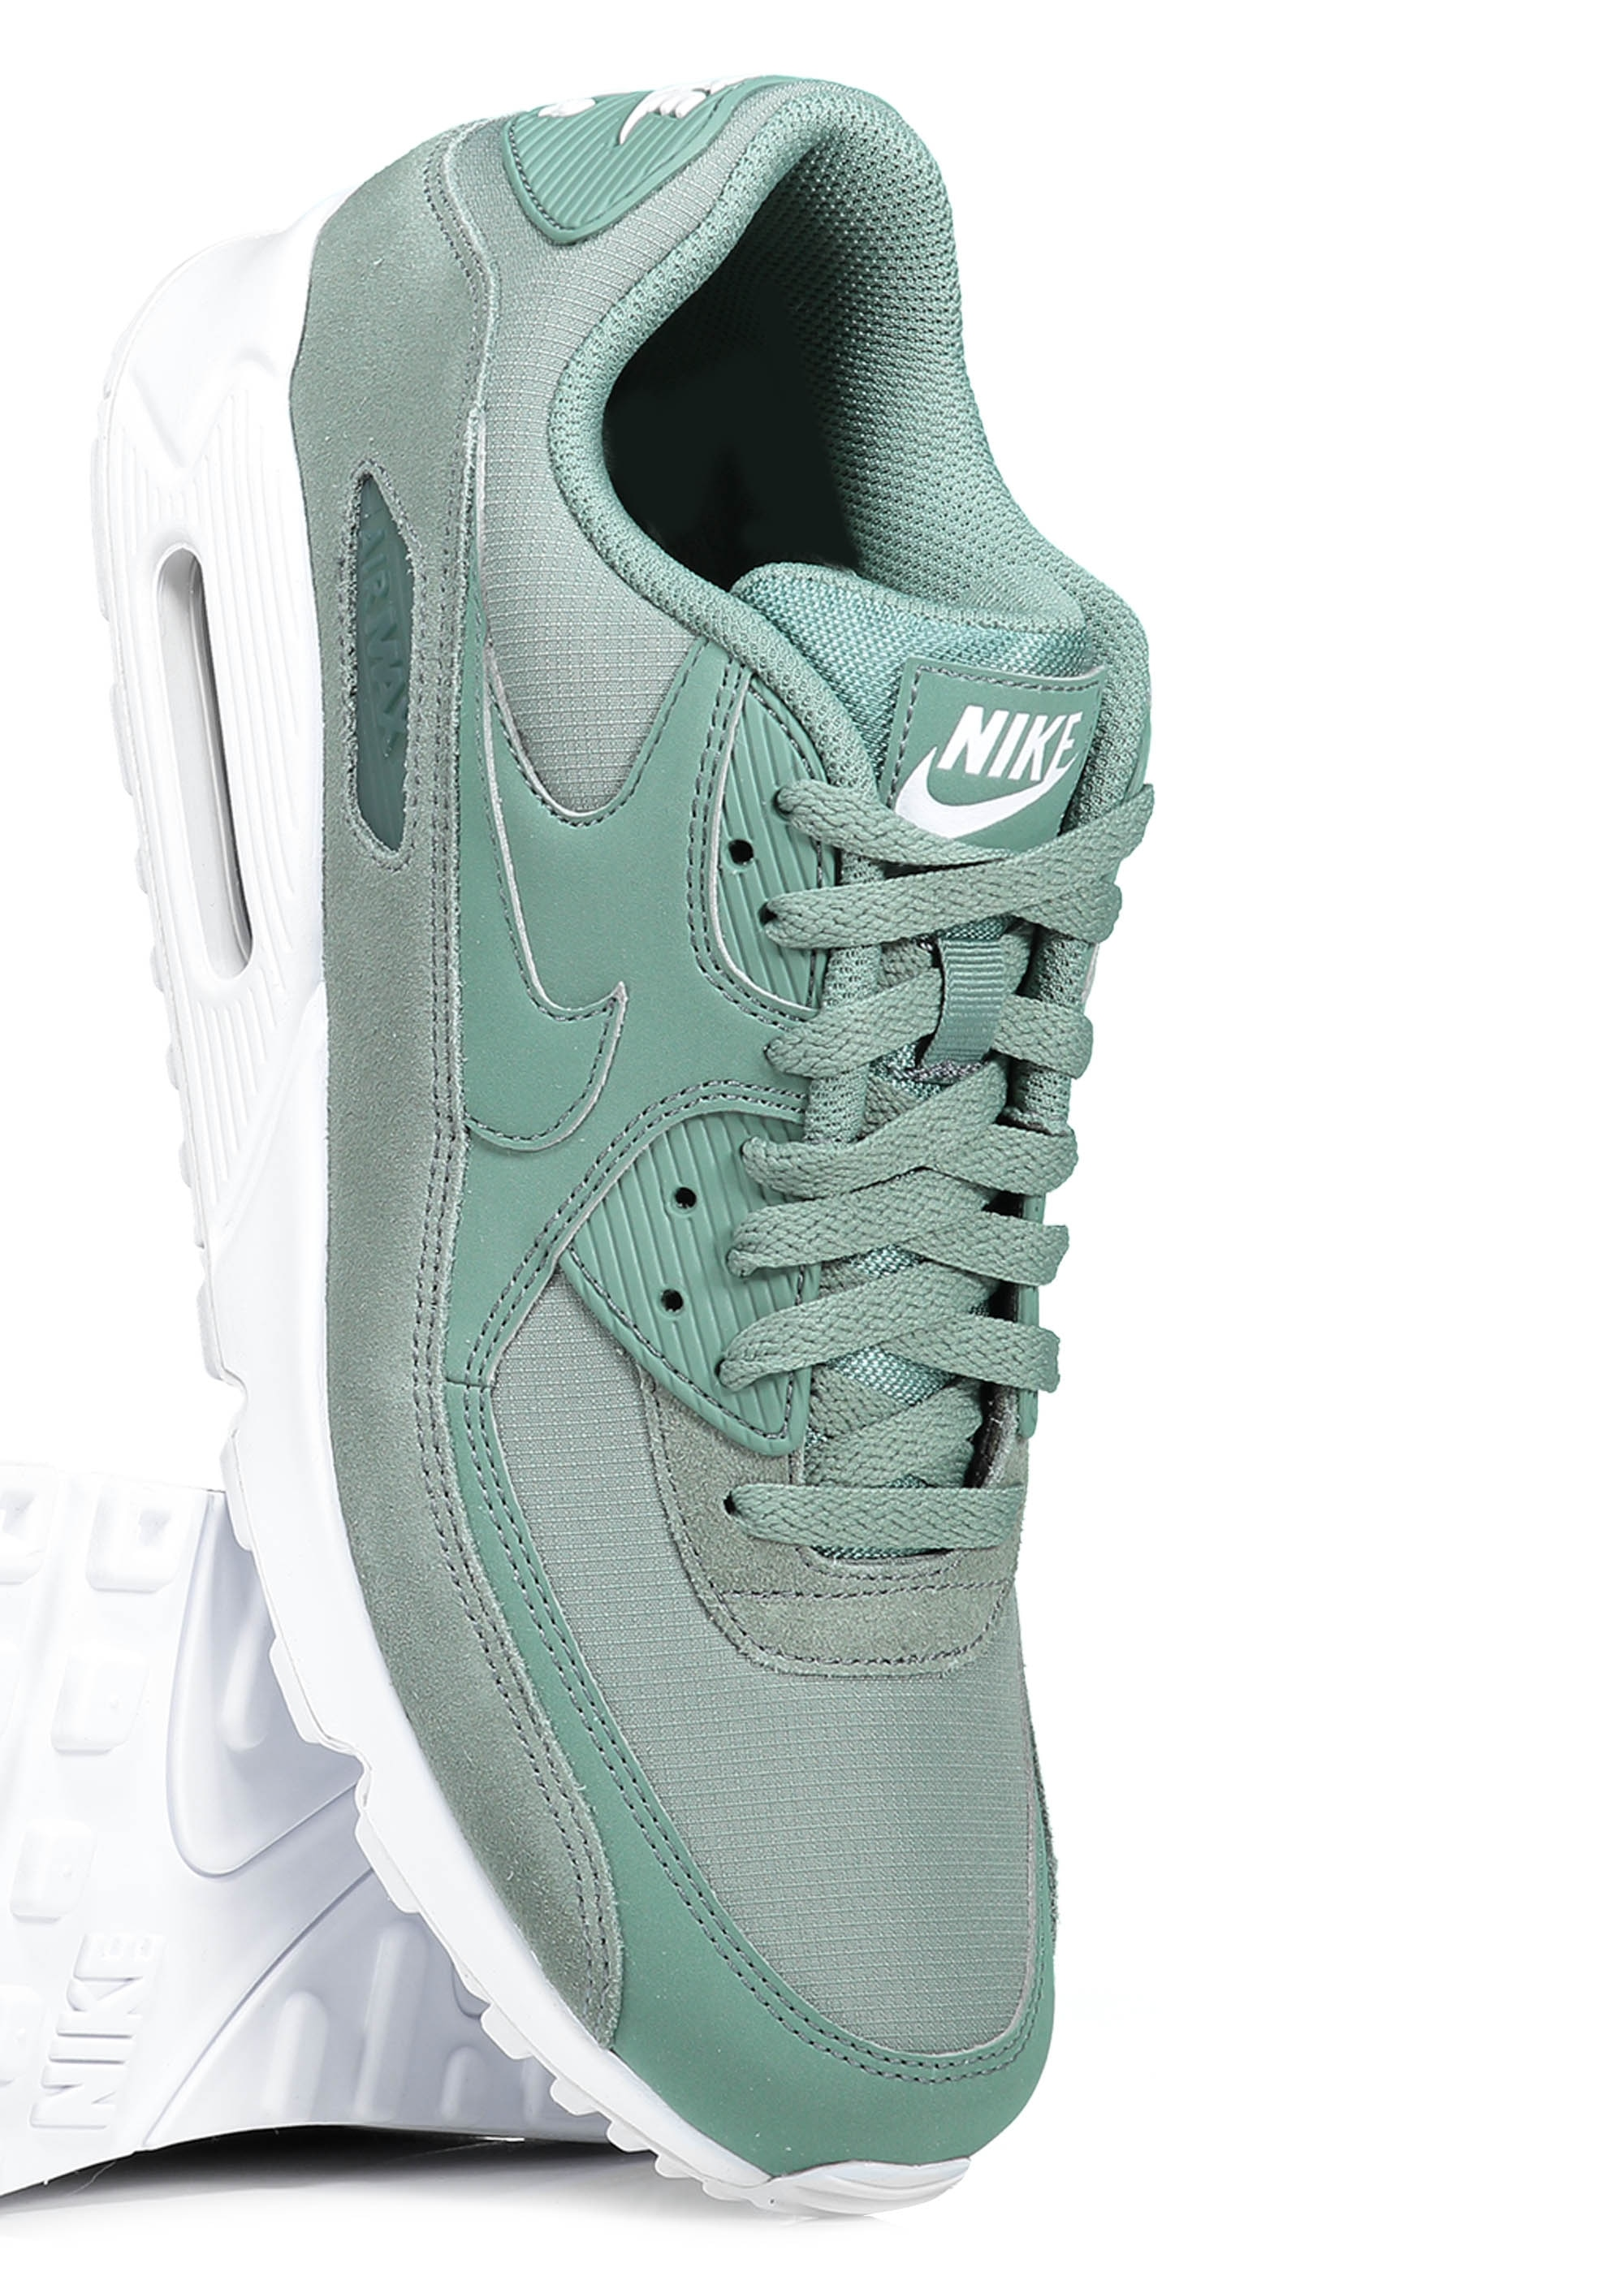 799aac005c Nike Footwear Air Max 90 Essential - Clay Green - Trainers from ...